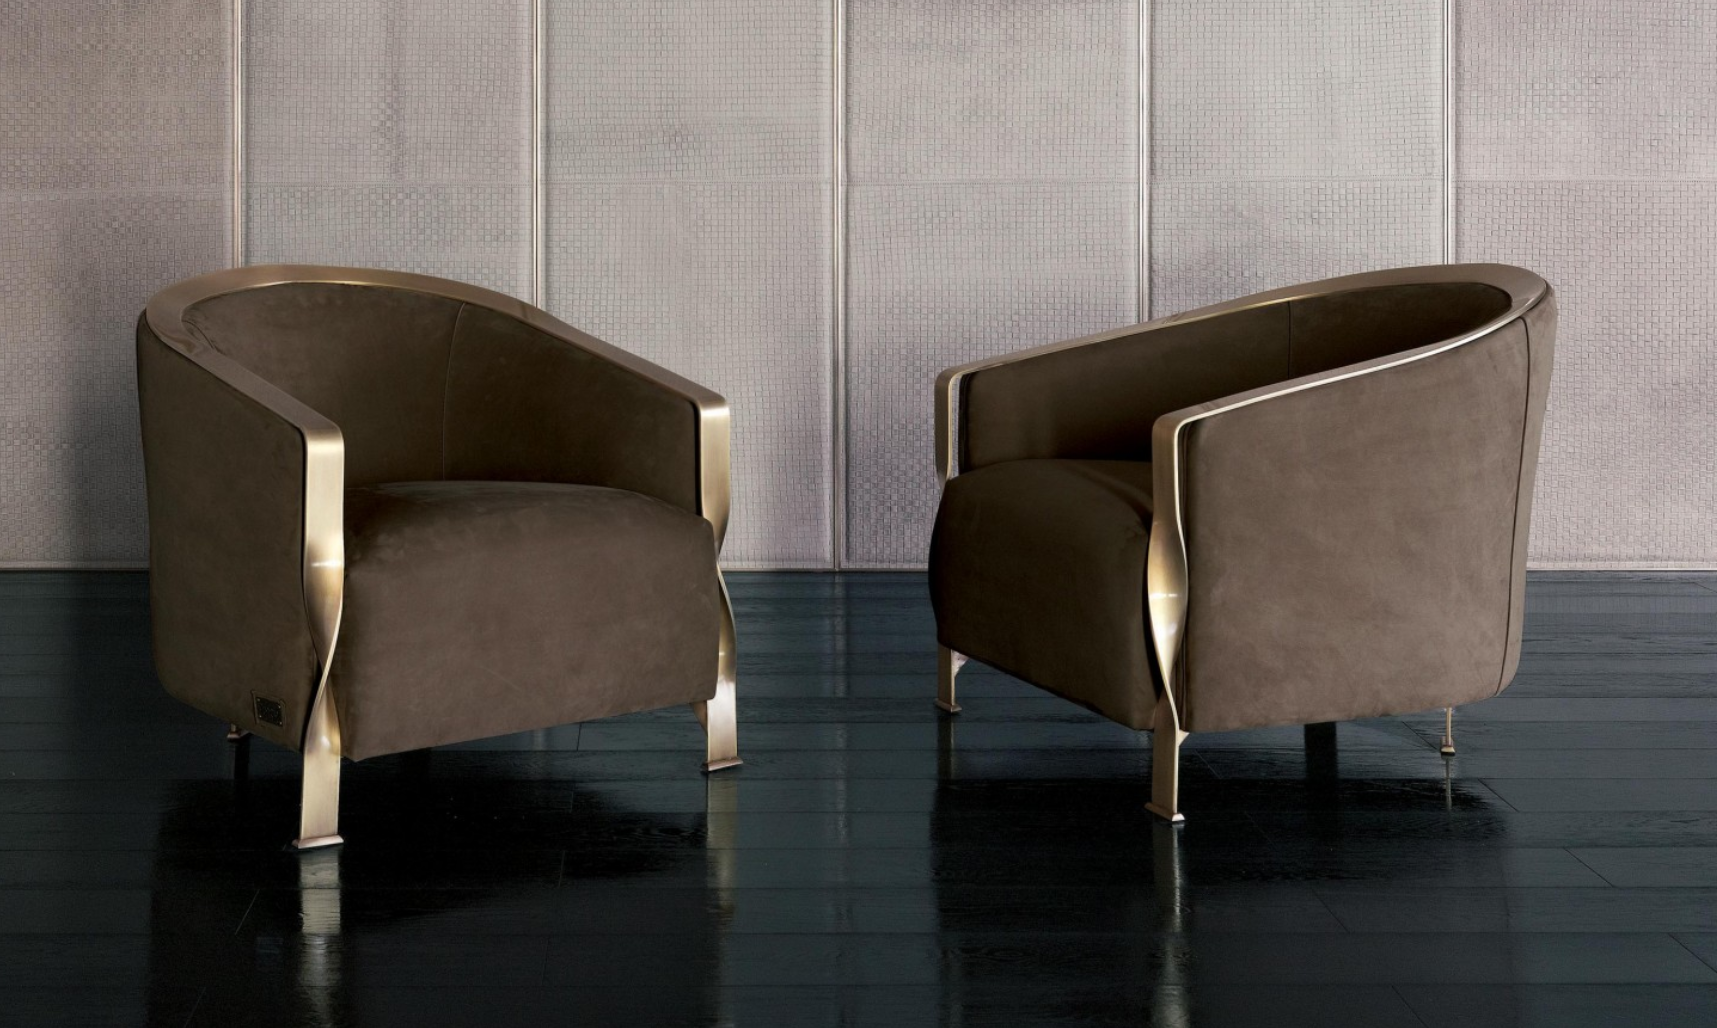 Rugiano Muebles - Rugiano Paris Chair Google Search Evs Pinterest[mjhdah]http://www.rugiano.com/sites/all/themes/rugiano/assets/imgs/showroom/gallery/1.jpg